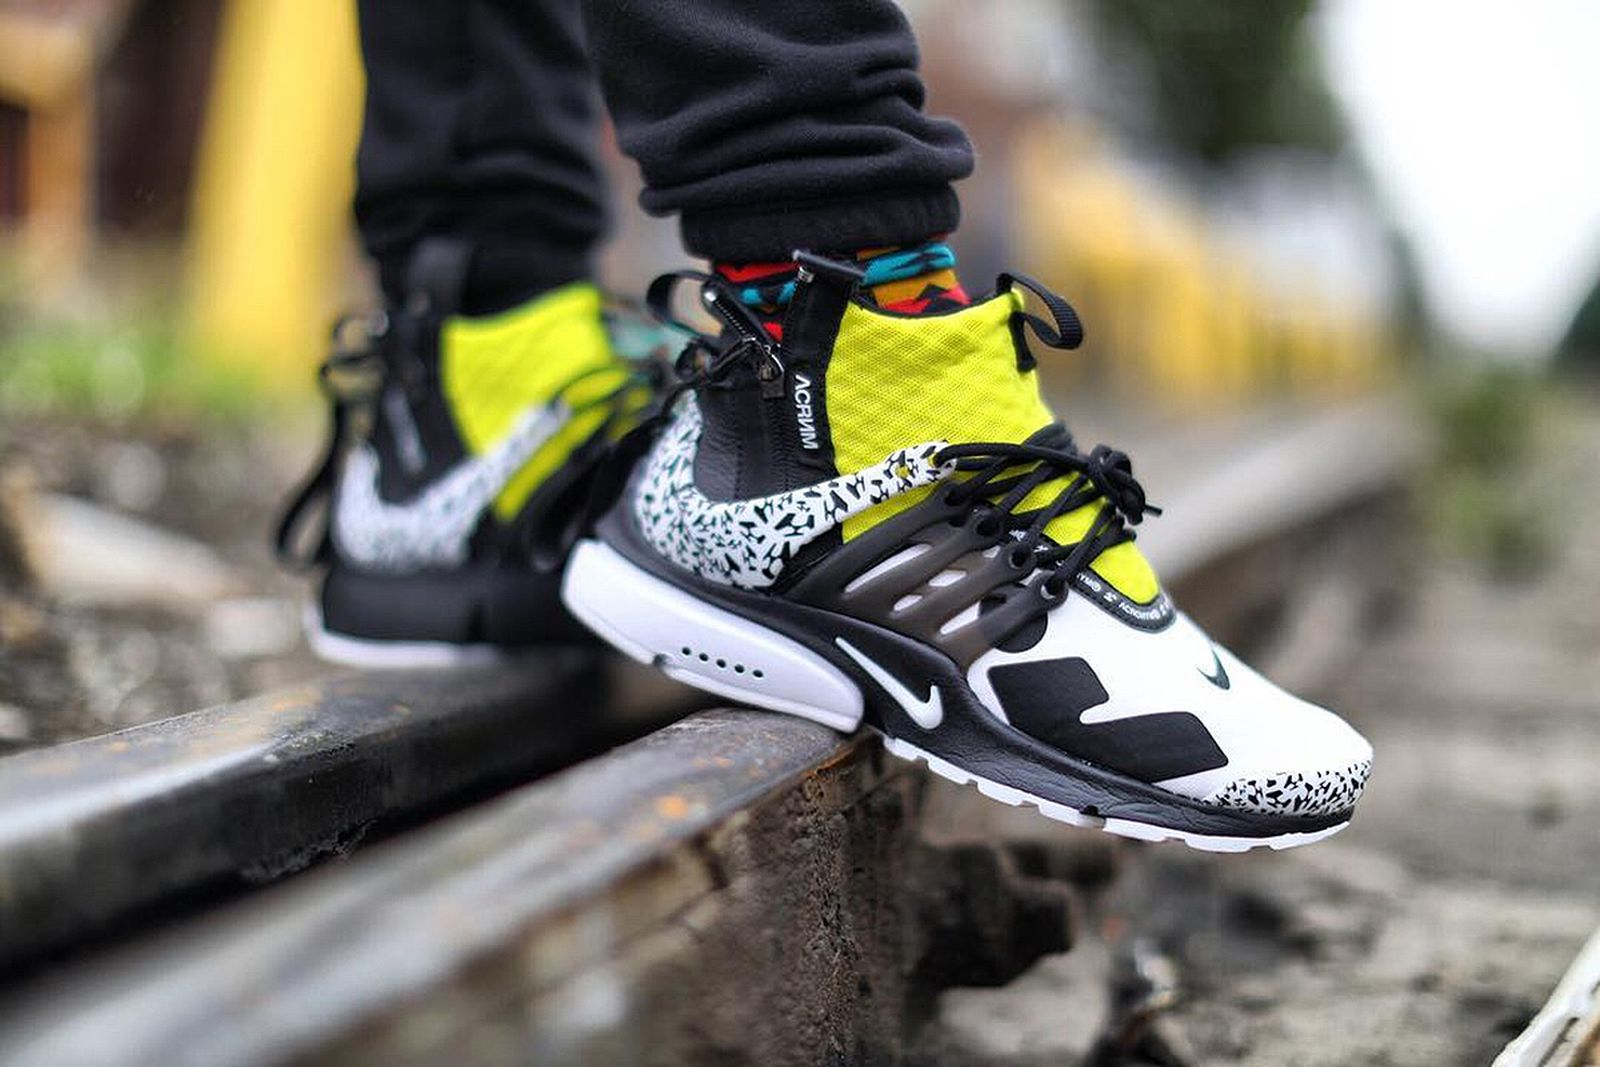 Profeta en lugar piel  How IG is Styling ACRONYM's Colorful Nike Presto Mid Collab